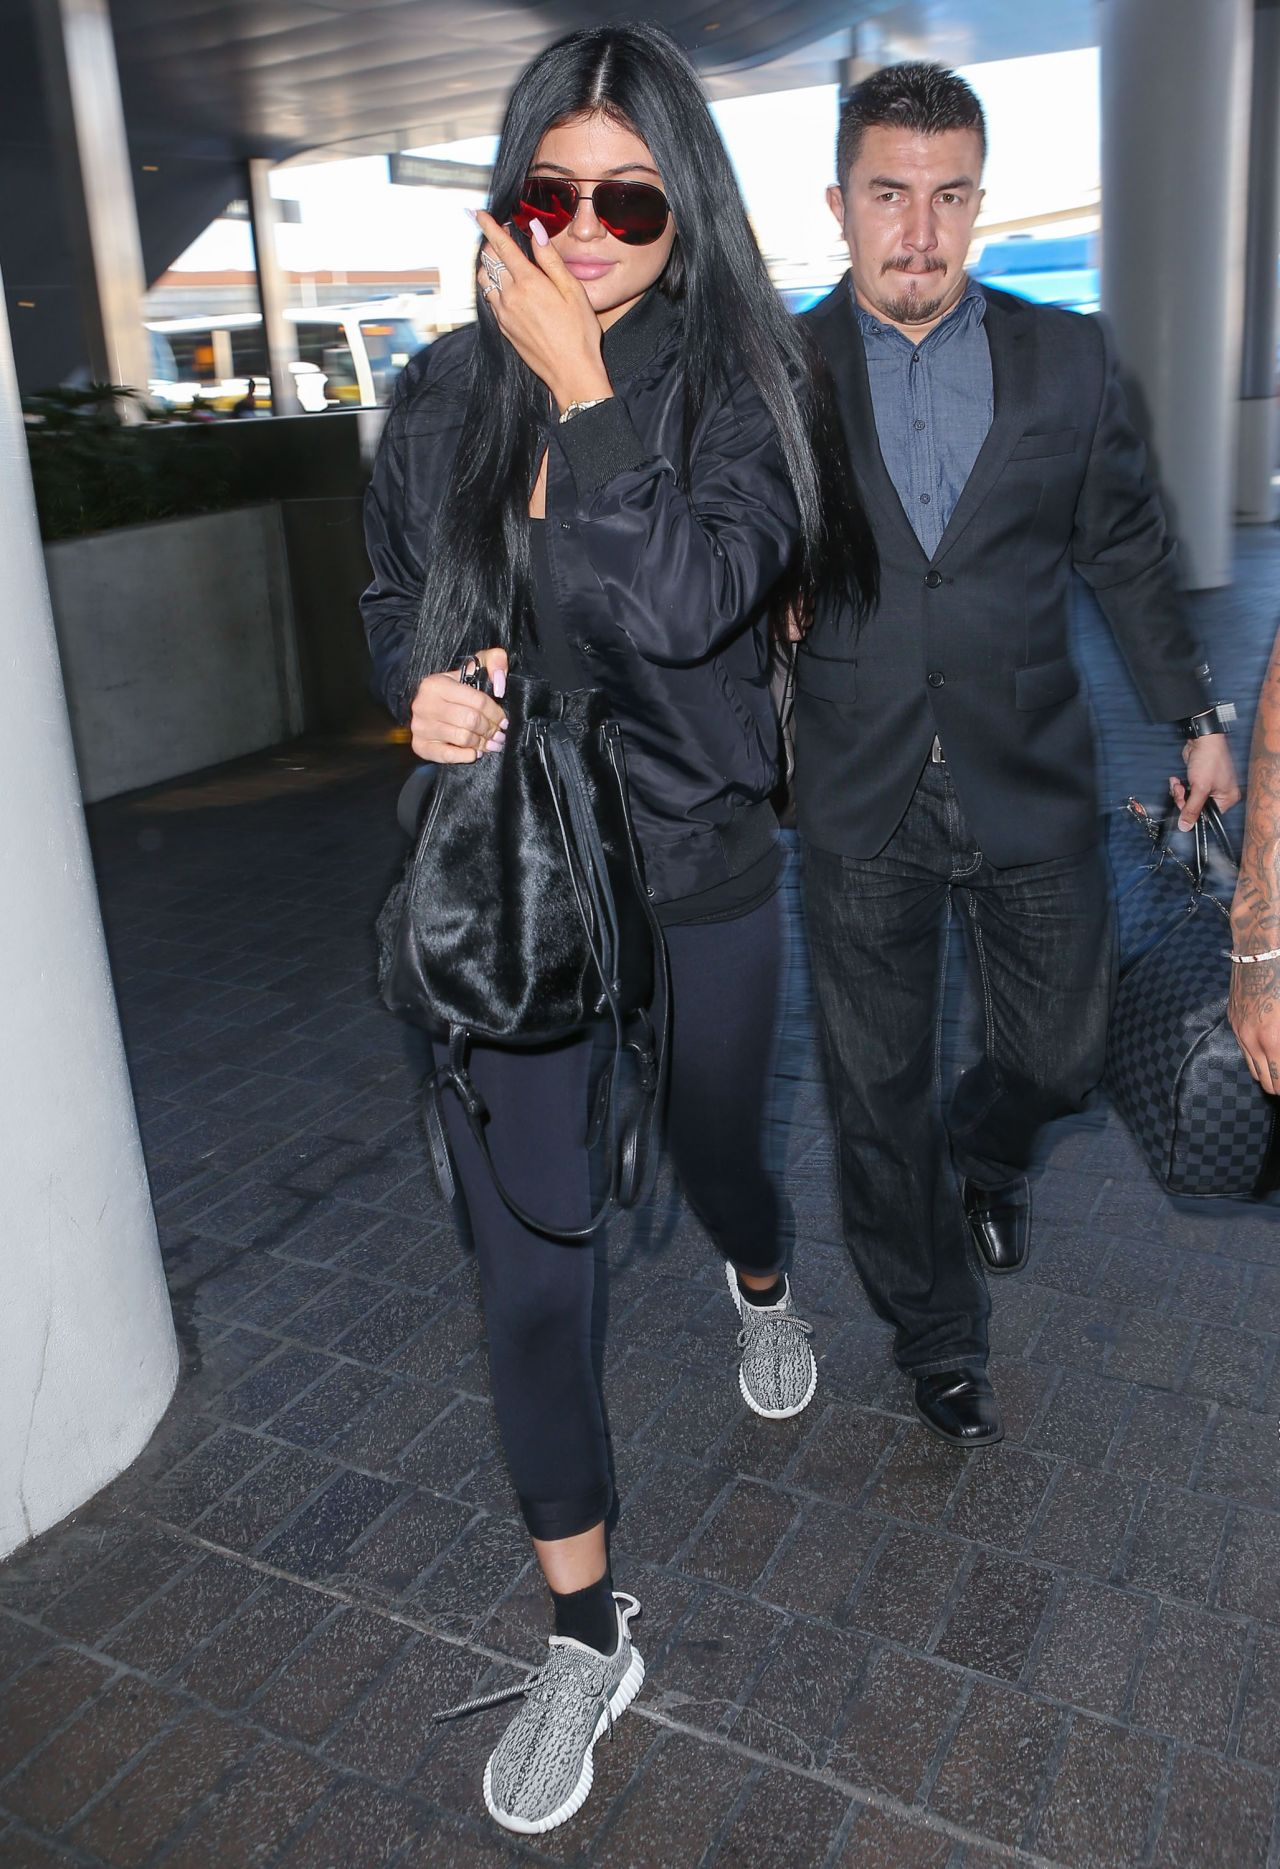 Kylie Jenner At Lax Airport In La June 2015